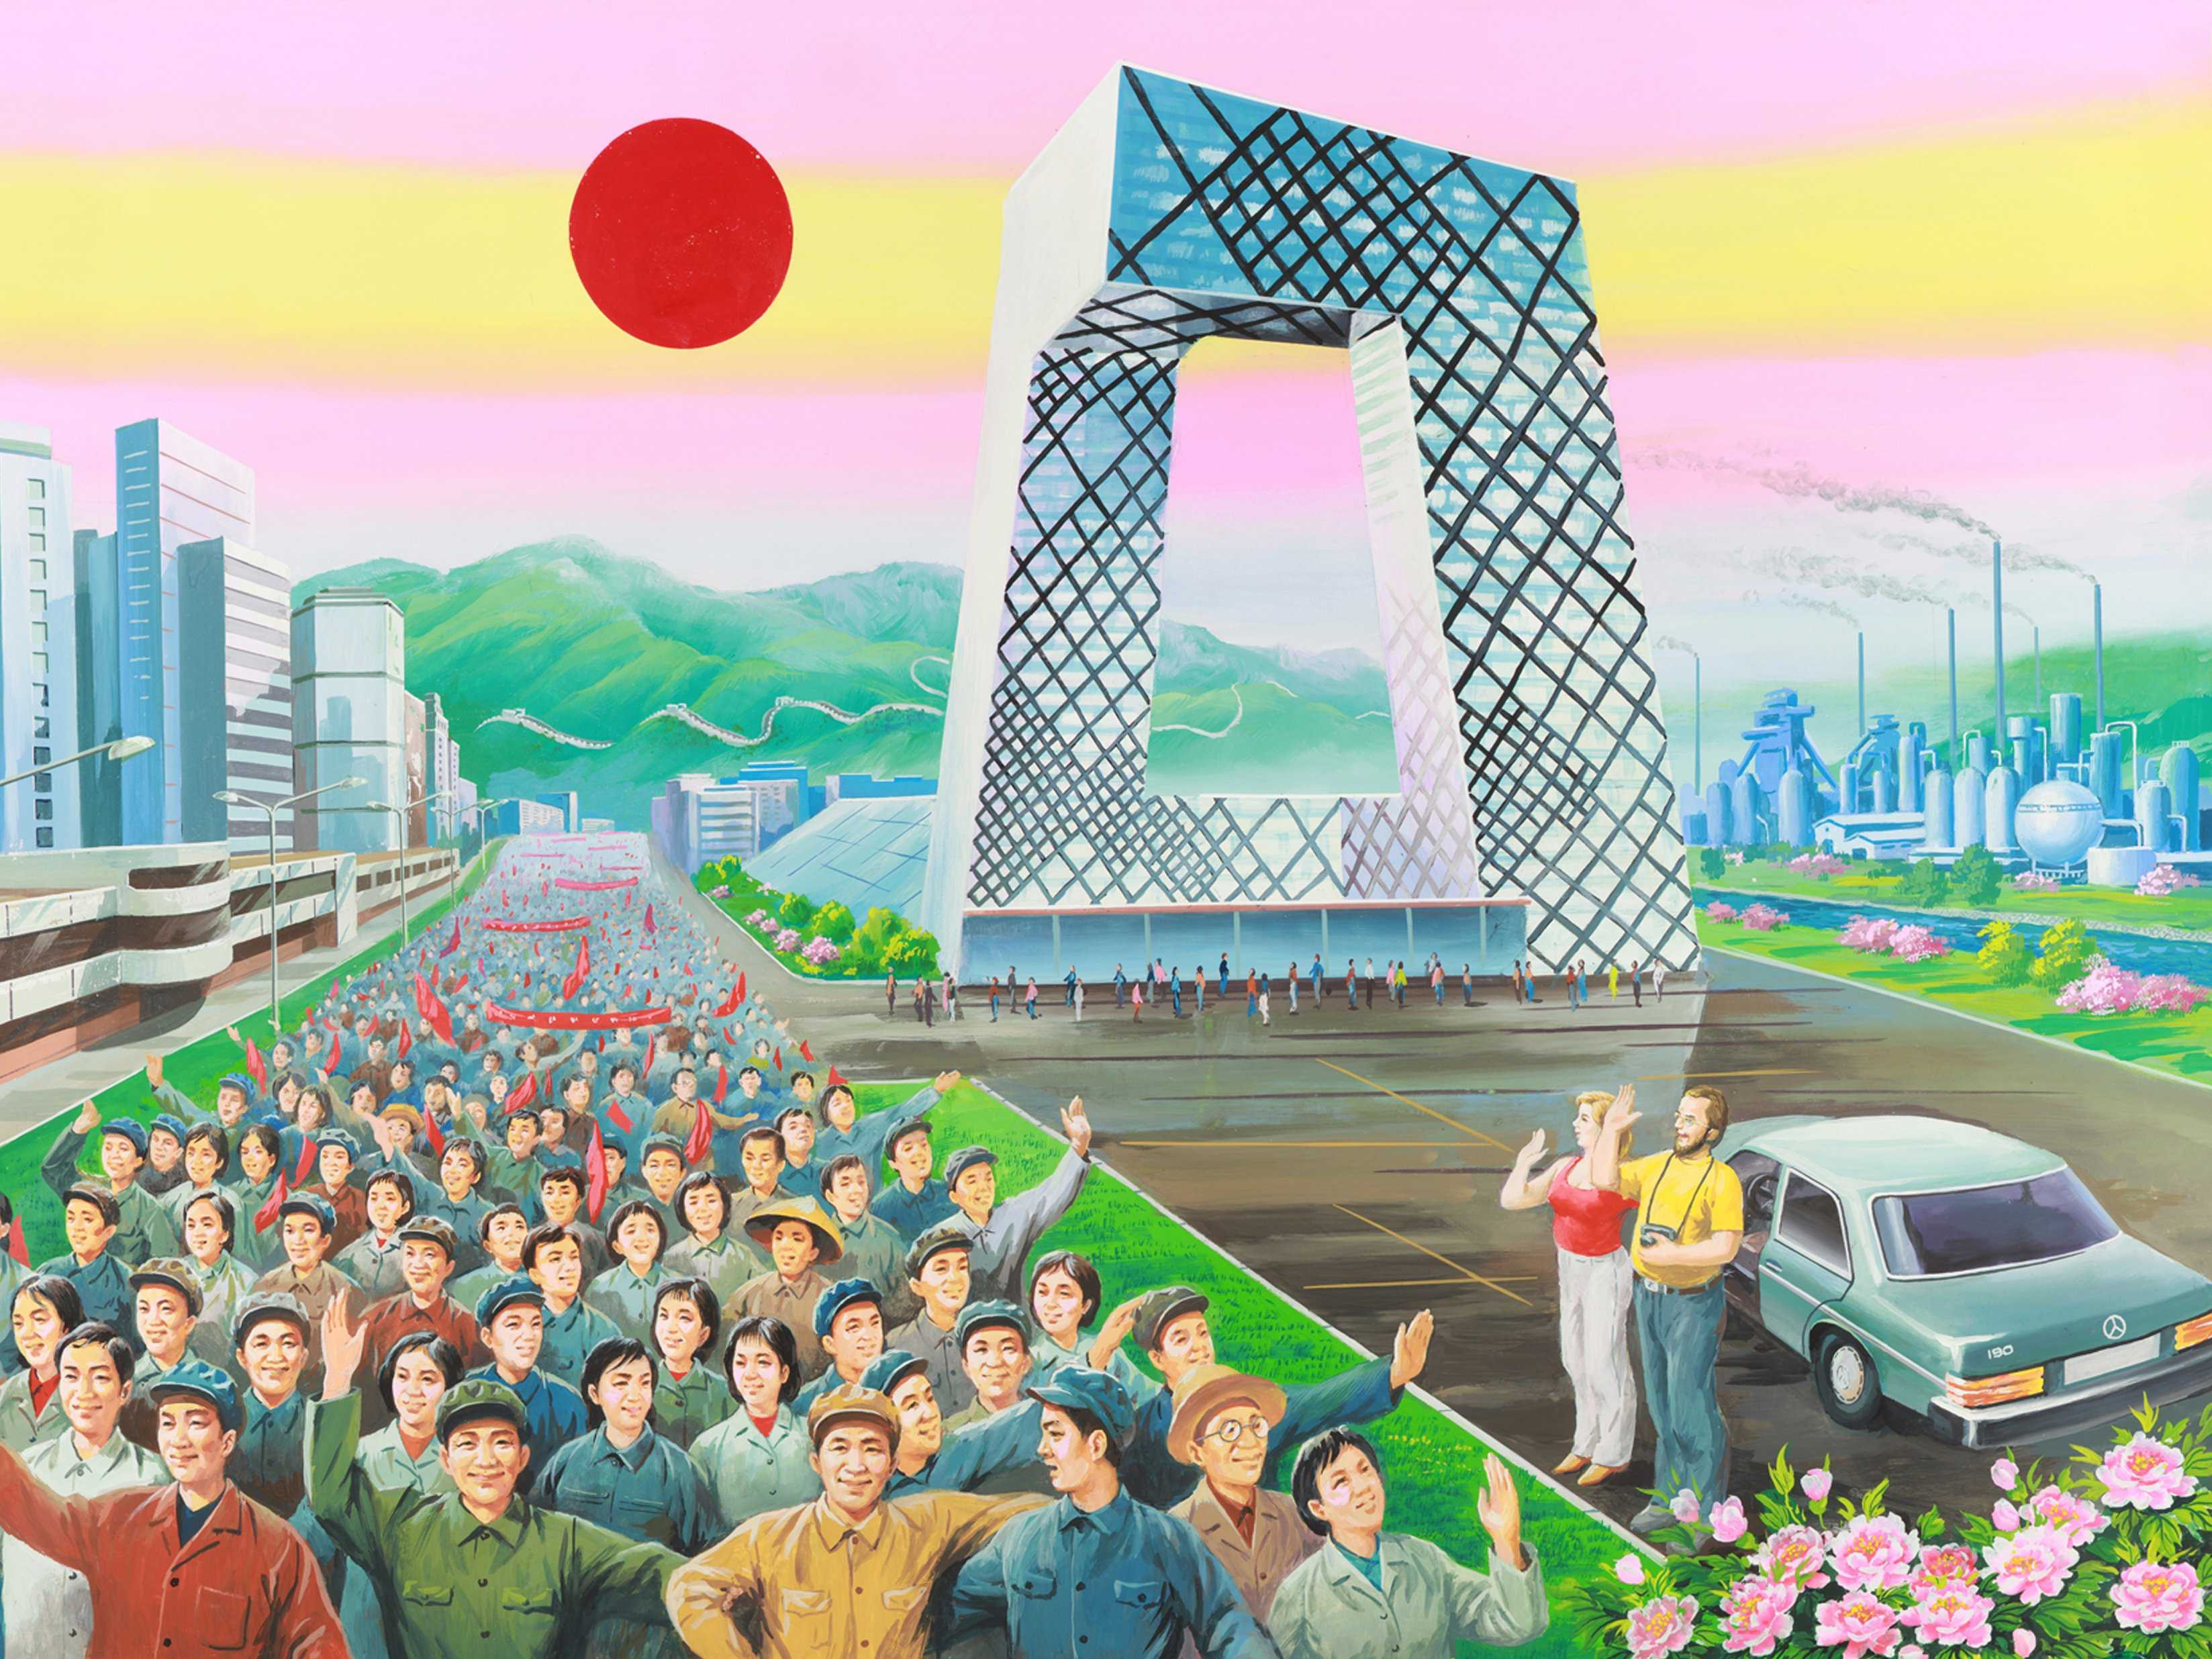 north-korean-propaganda-artists-painted-these-incredible-pictures-of-china-as-a-socialist-utopia